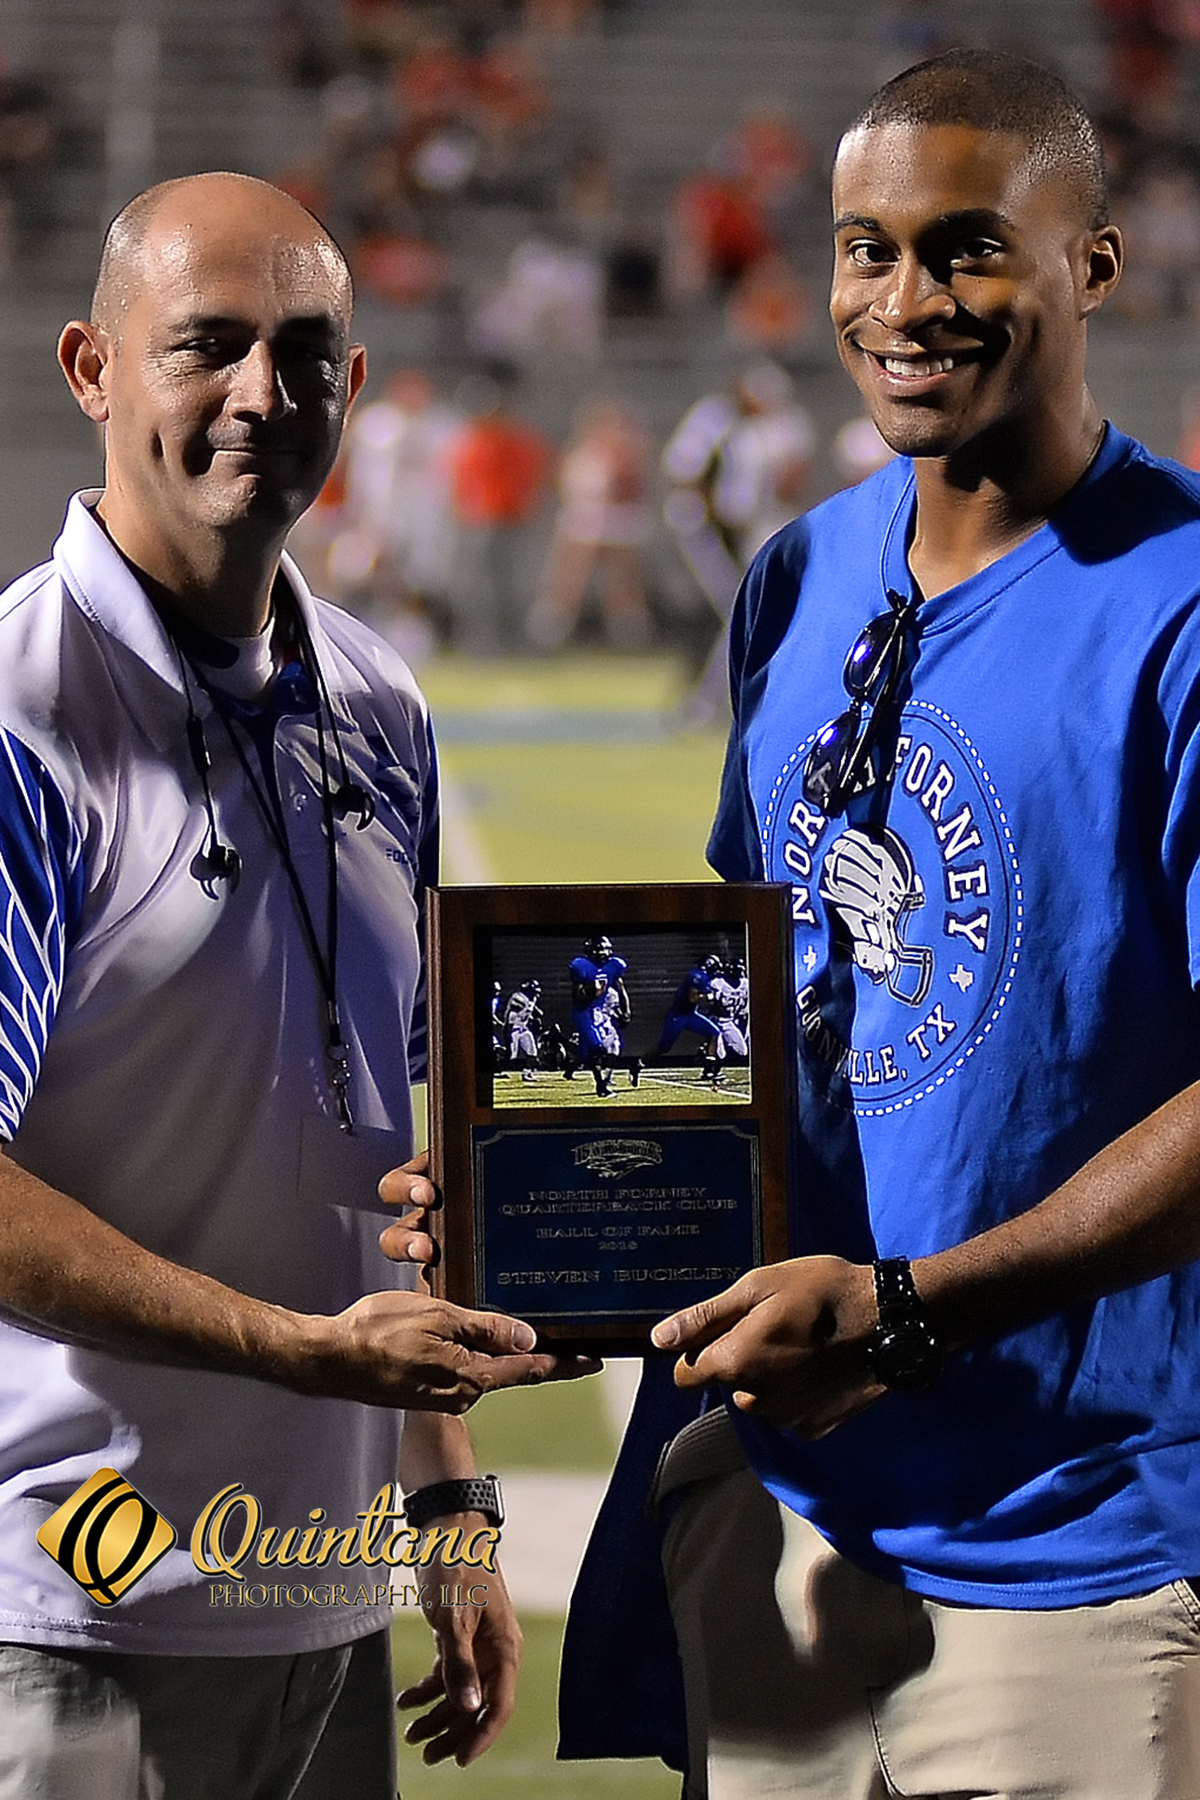 Falcon Alum Buckley Honored at Homecoming Game